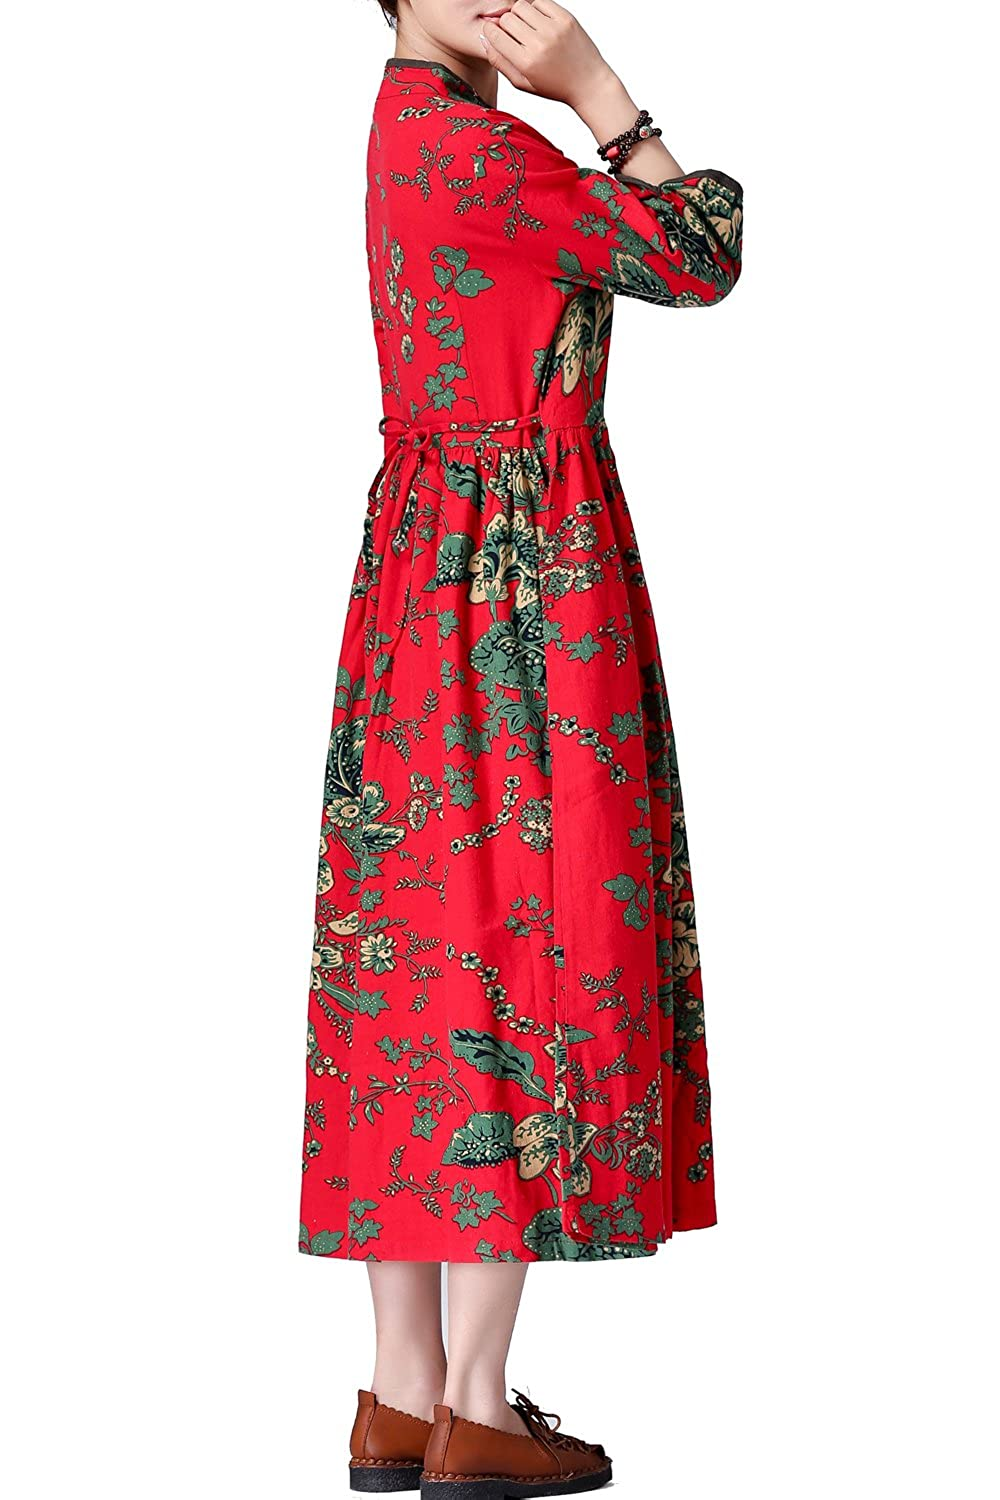 Women's flower dress cotton dress linen maxi dress long dress